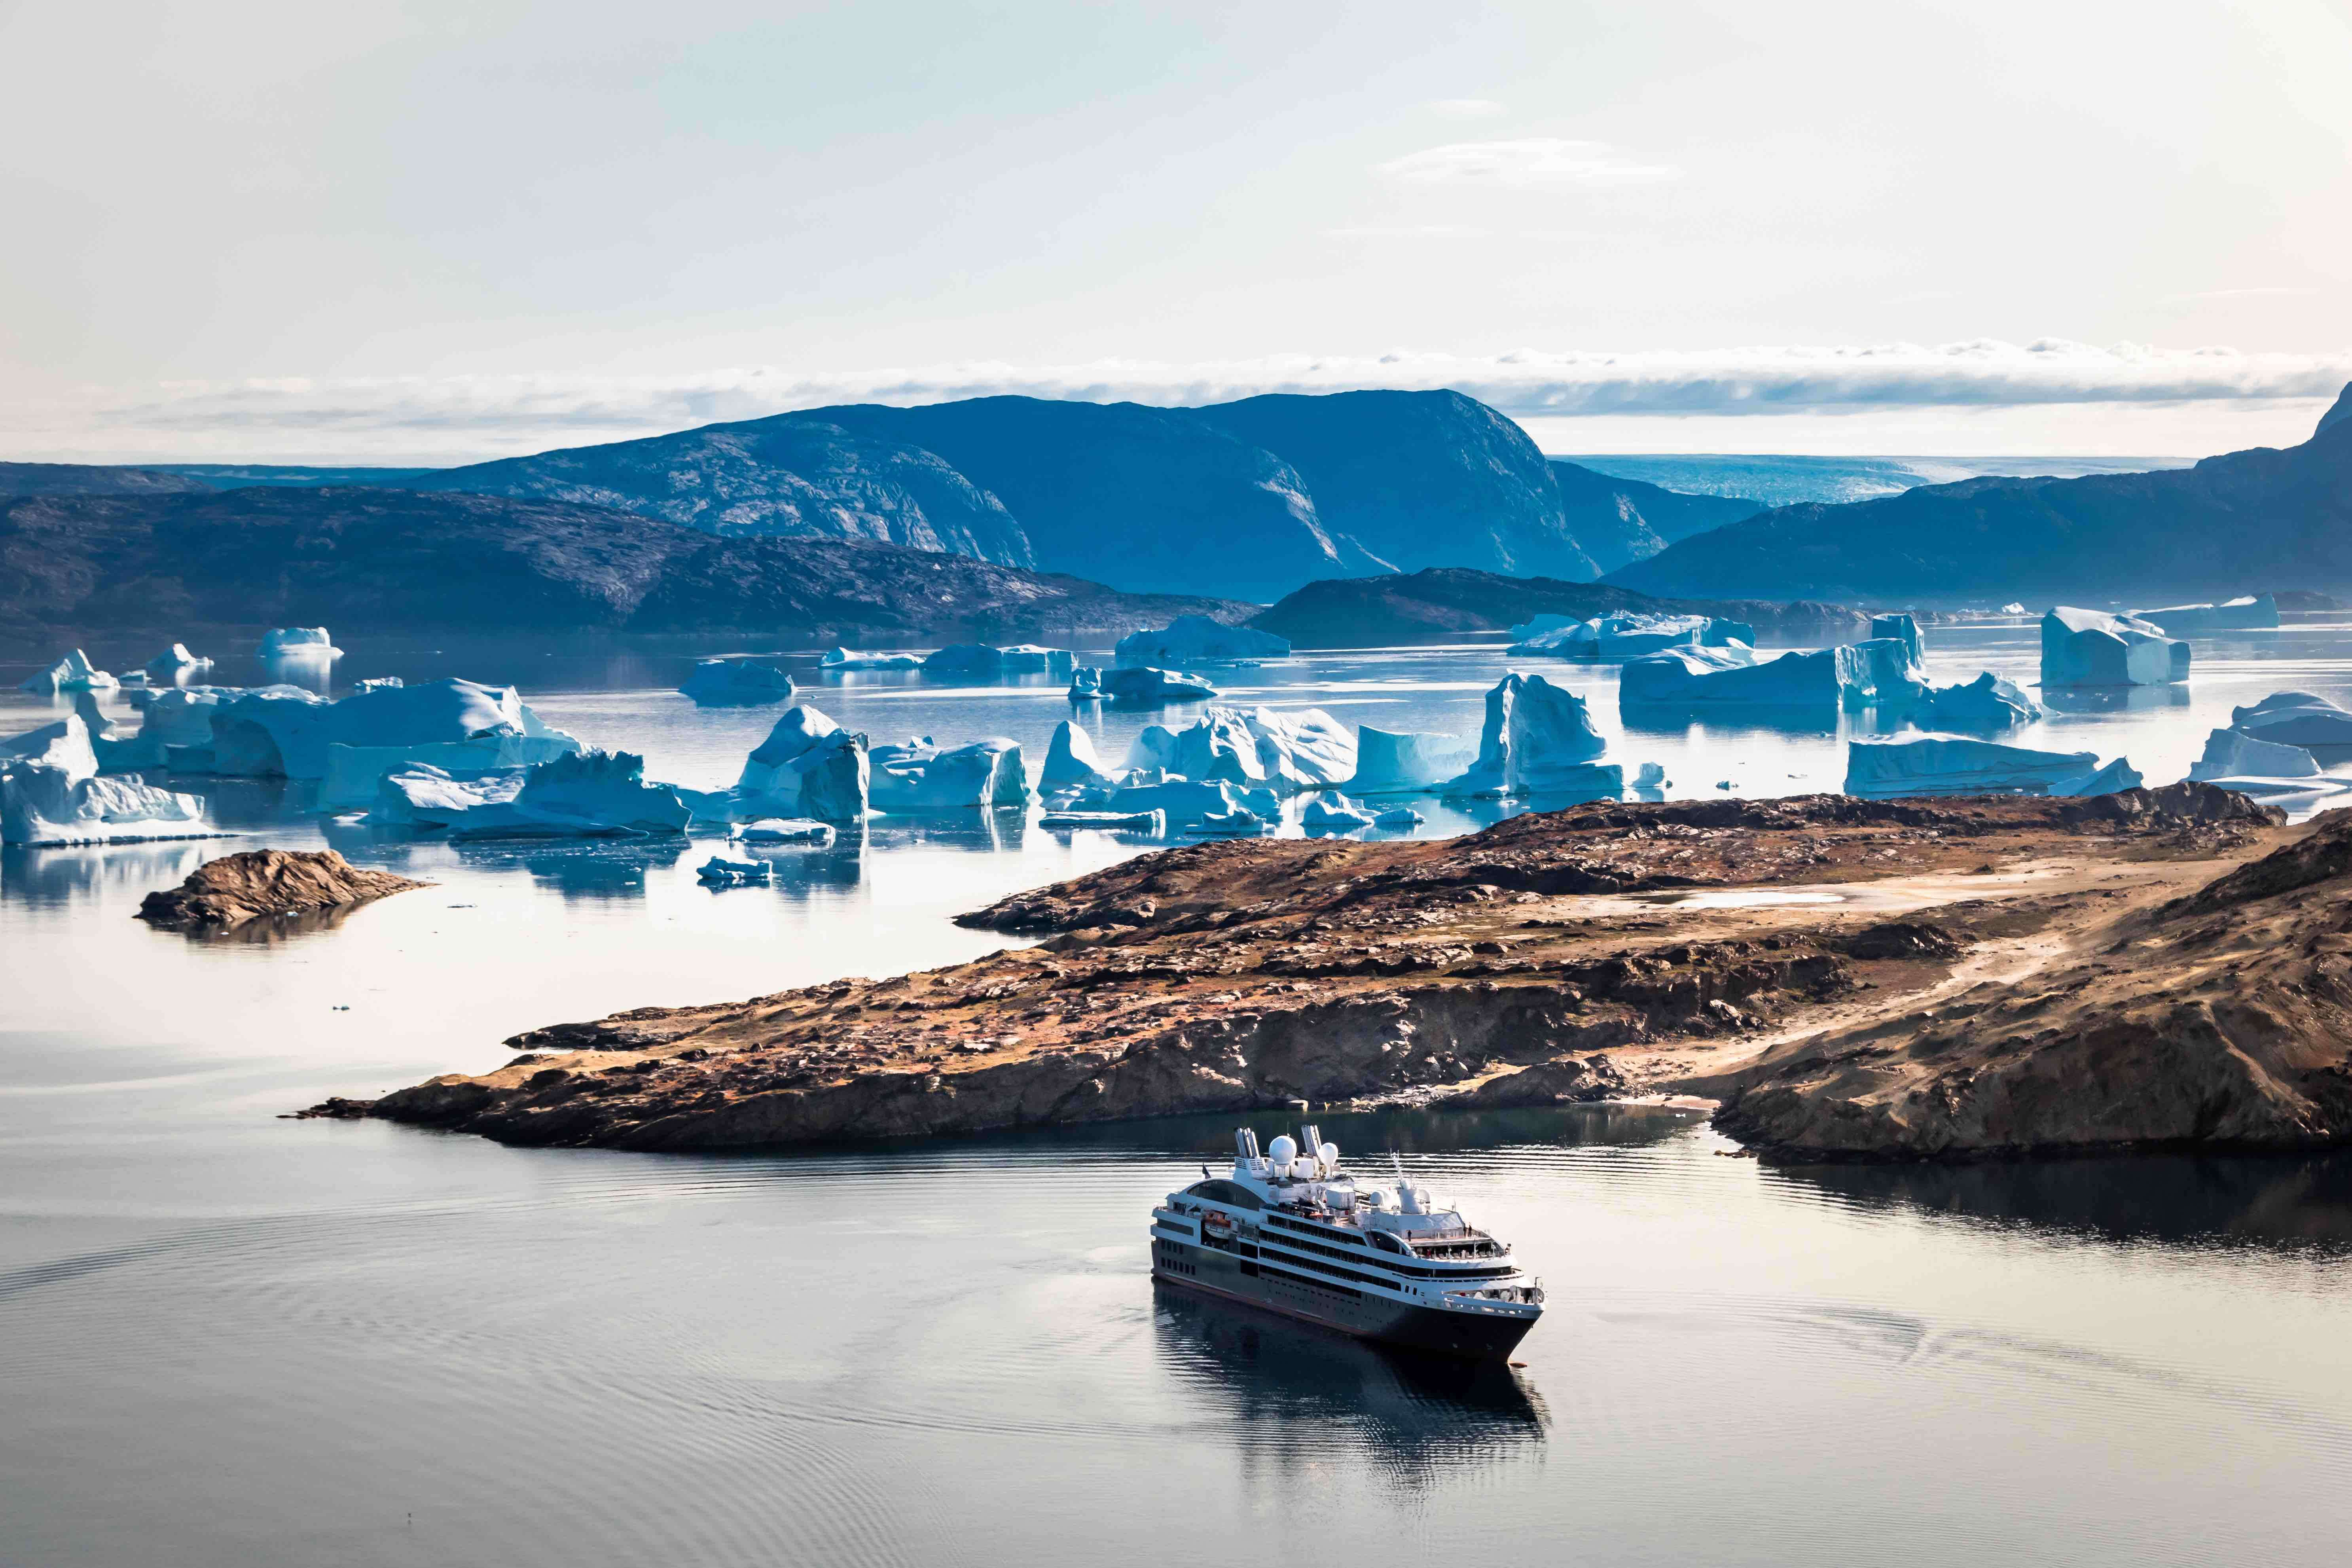 Will you take the trip of a lifetime and cruise to Arctic Greenland in 2022?